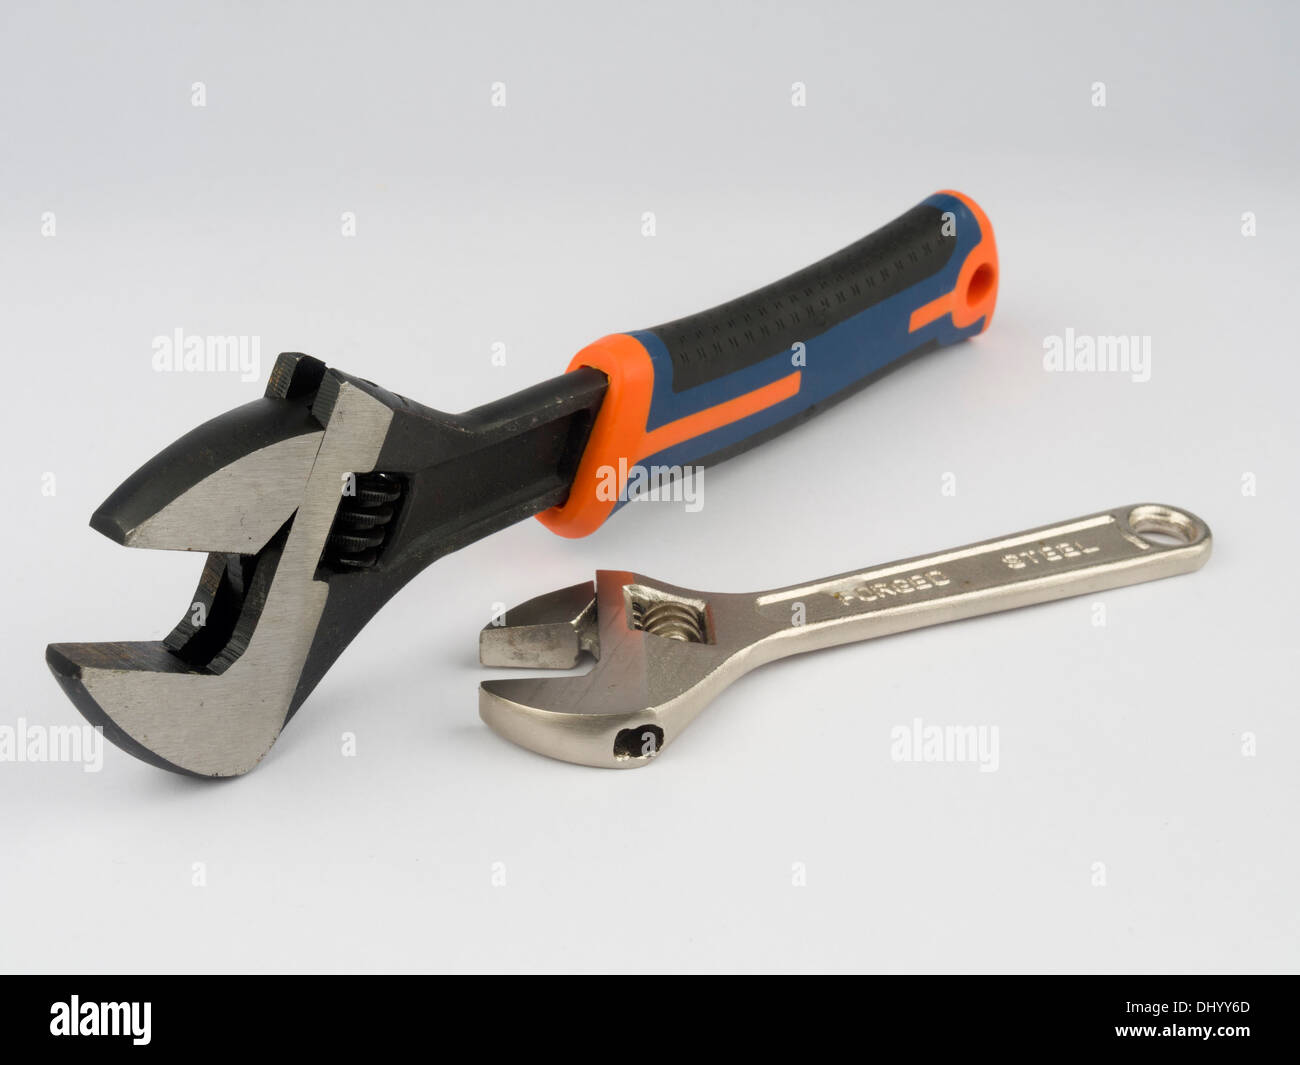 Adjustable wrenches (spanners) cutout isolated on white background - Stock Image